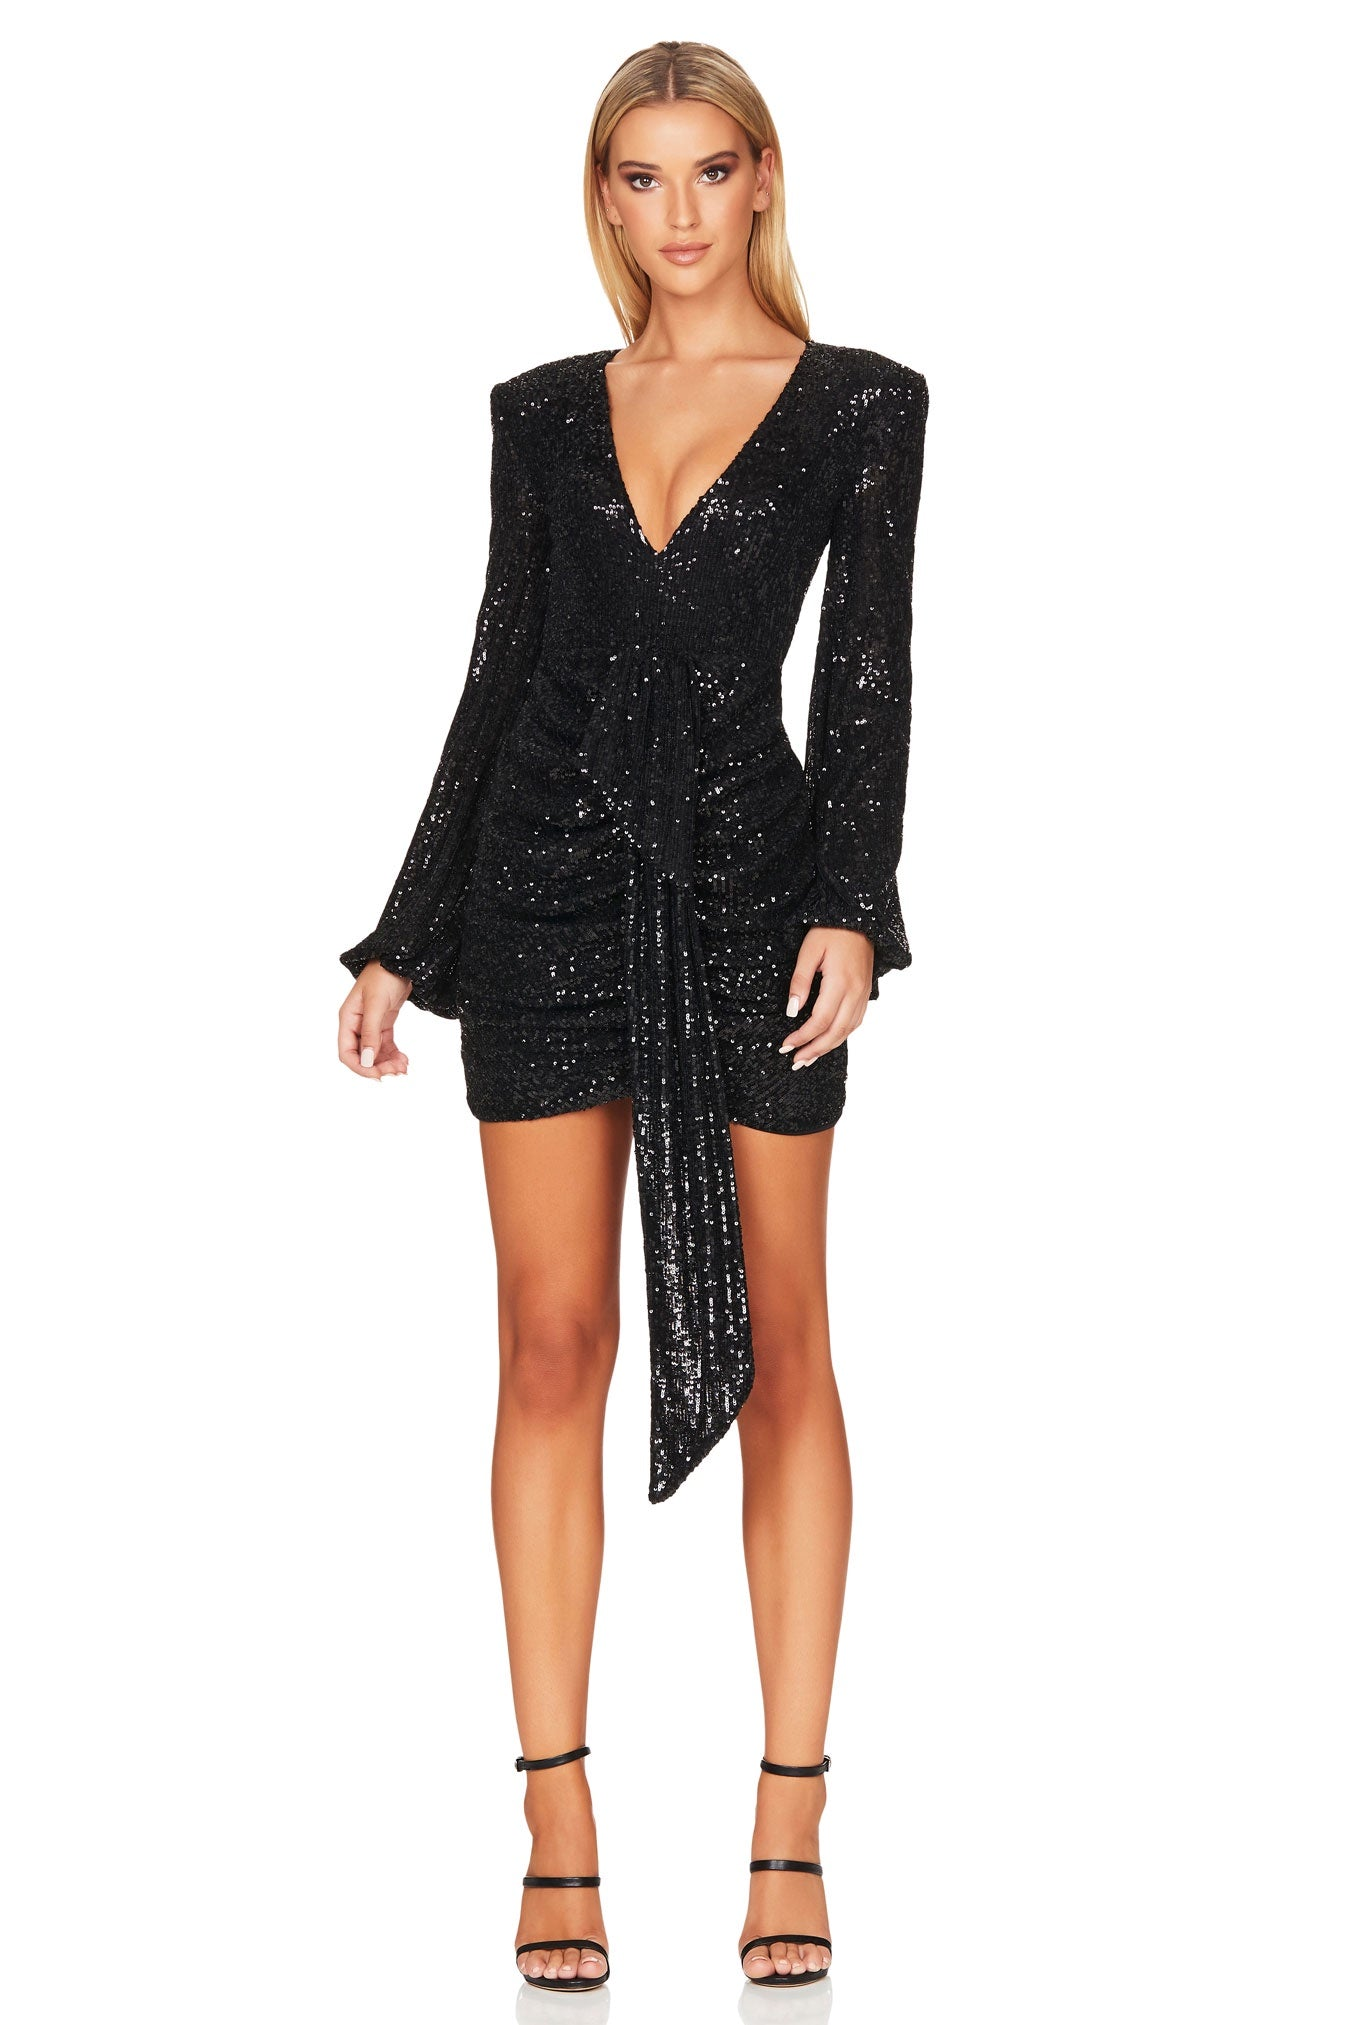 Sierra Sequin Mini - Black